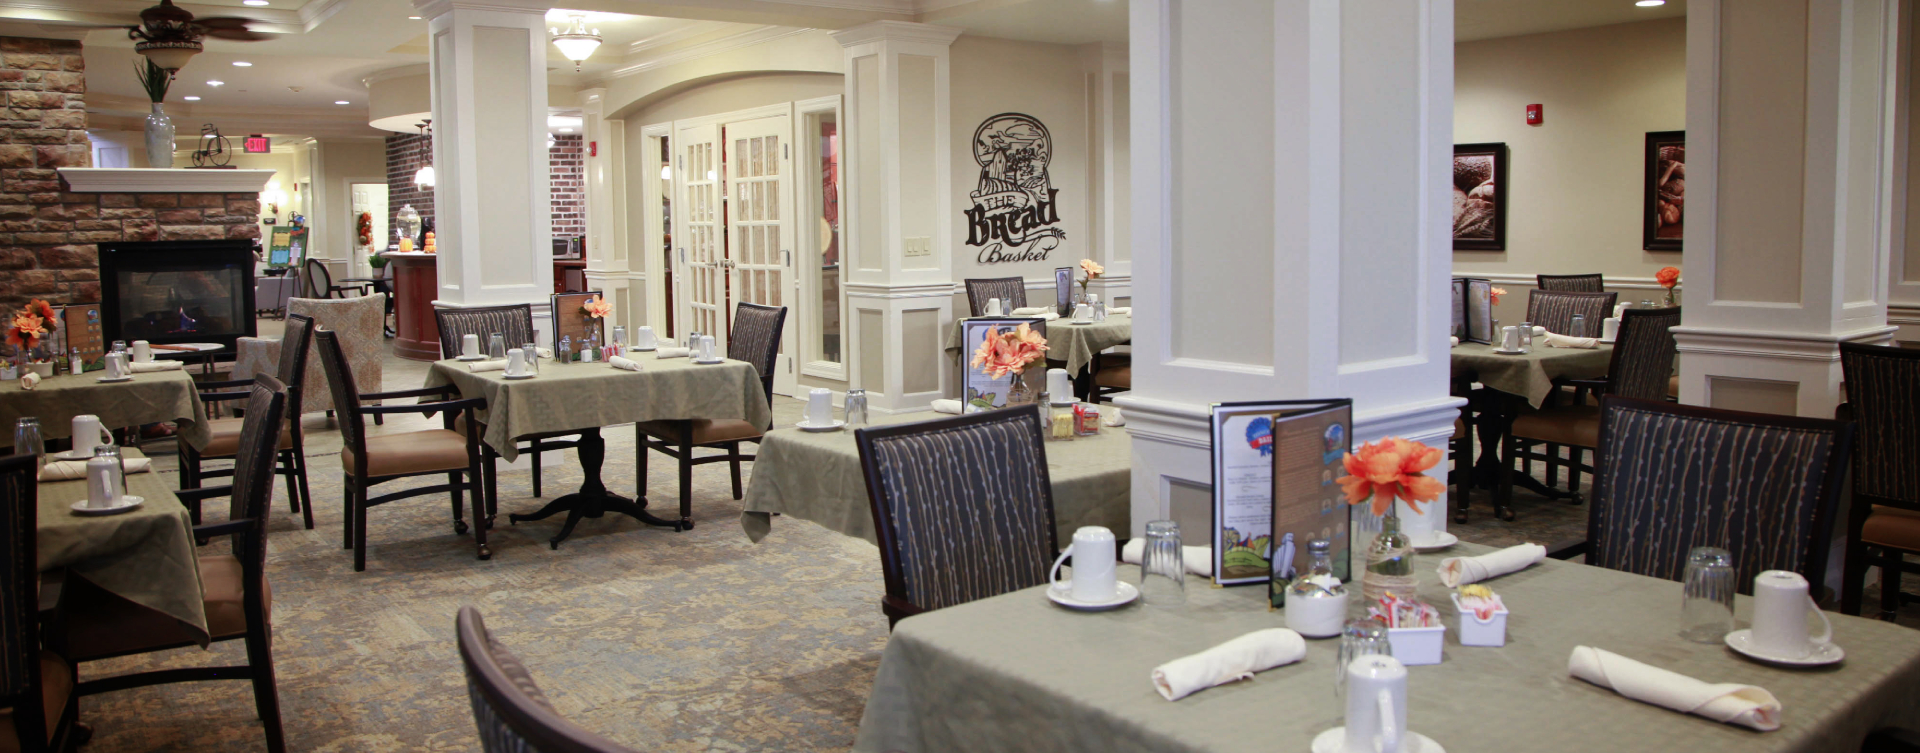 Enjoy homestyle food with made-from-scratch recipes in our dining room at Bickford of St. Charles